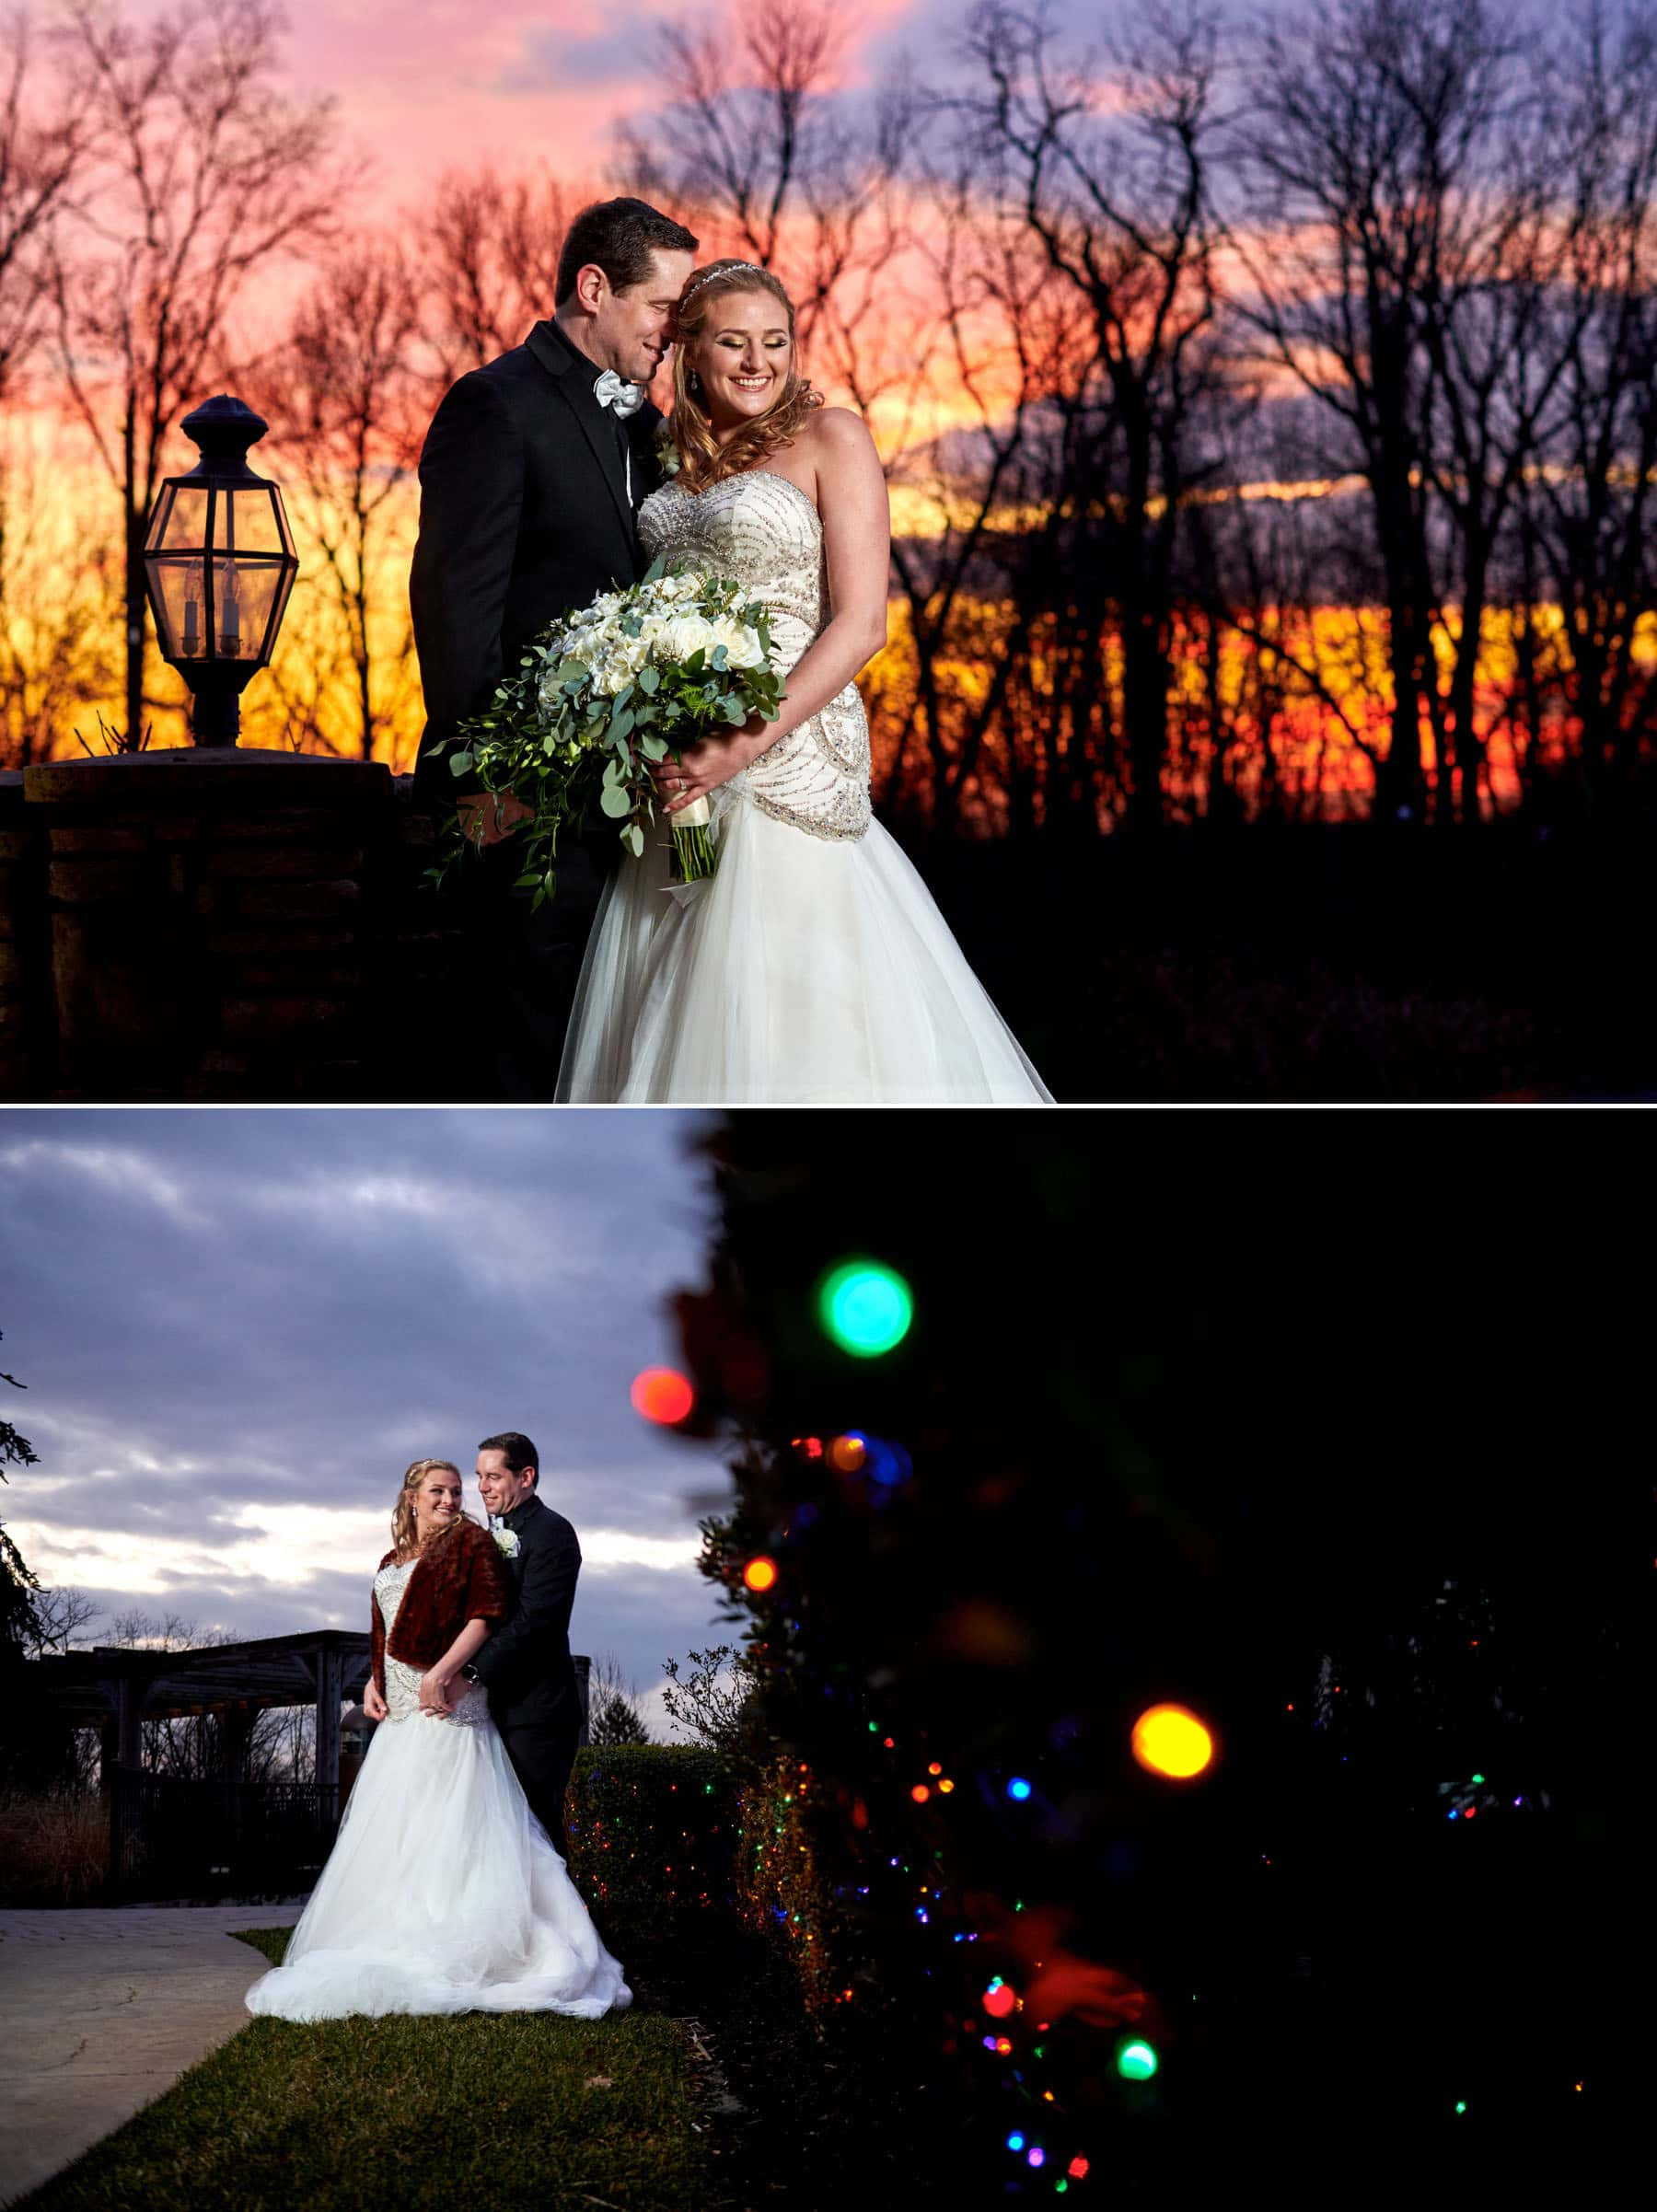 new years eve sunset wedding photo at laurita winery